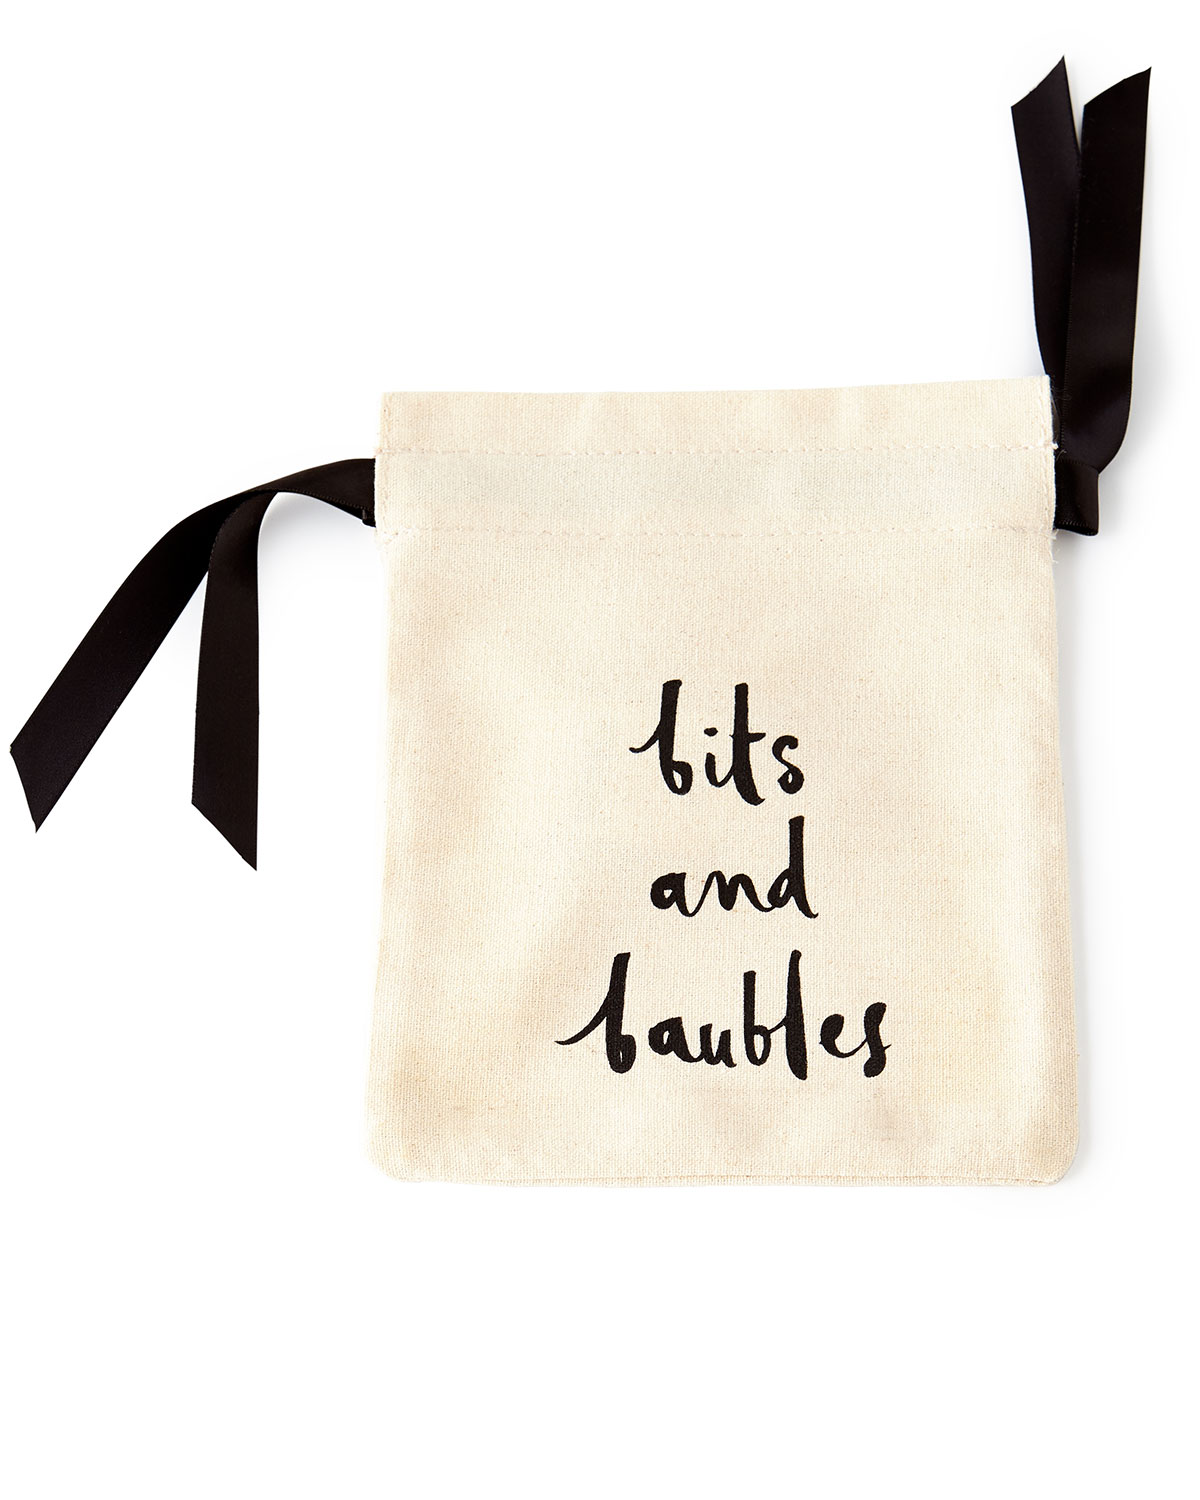 Bits and Baubles Jewelry Pouch